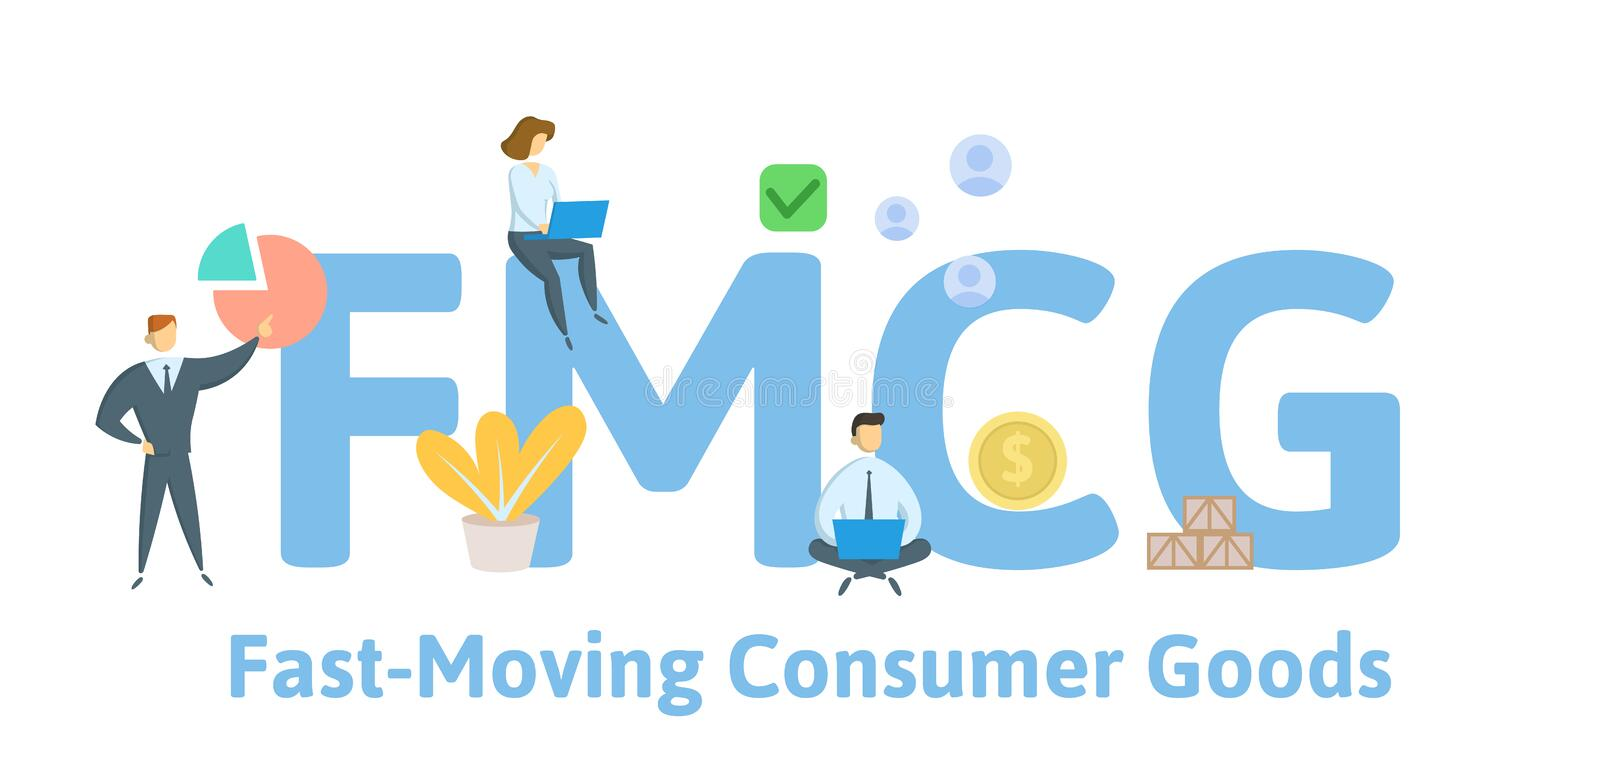 FMCG, Fast Moving Consumer Goods. Concept with people, letters and icons. Flat vector illustration. Isolated on white vector illustration